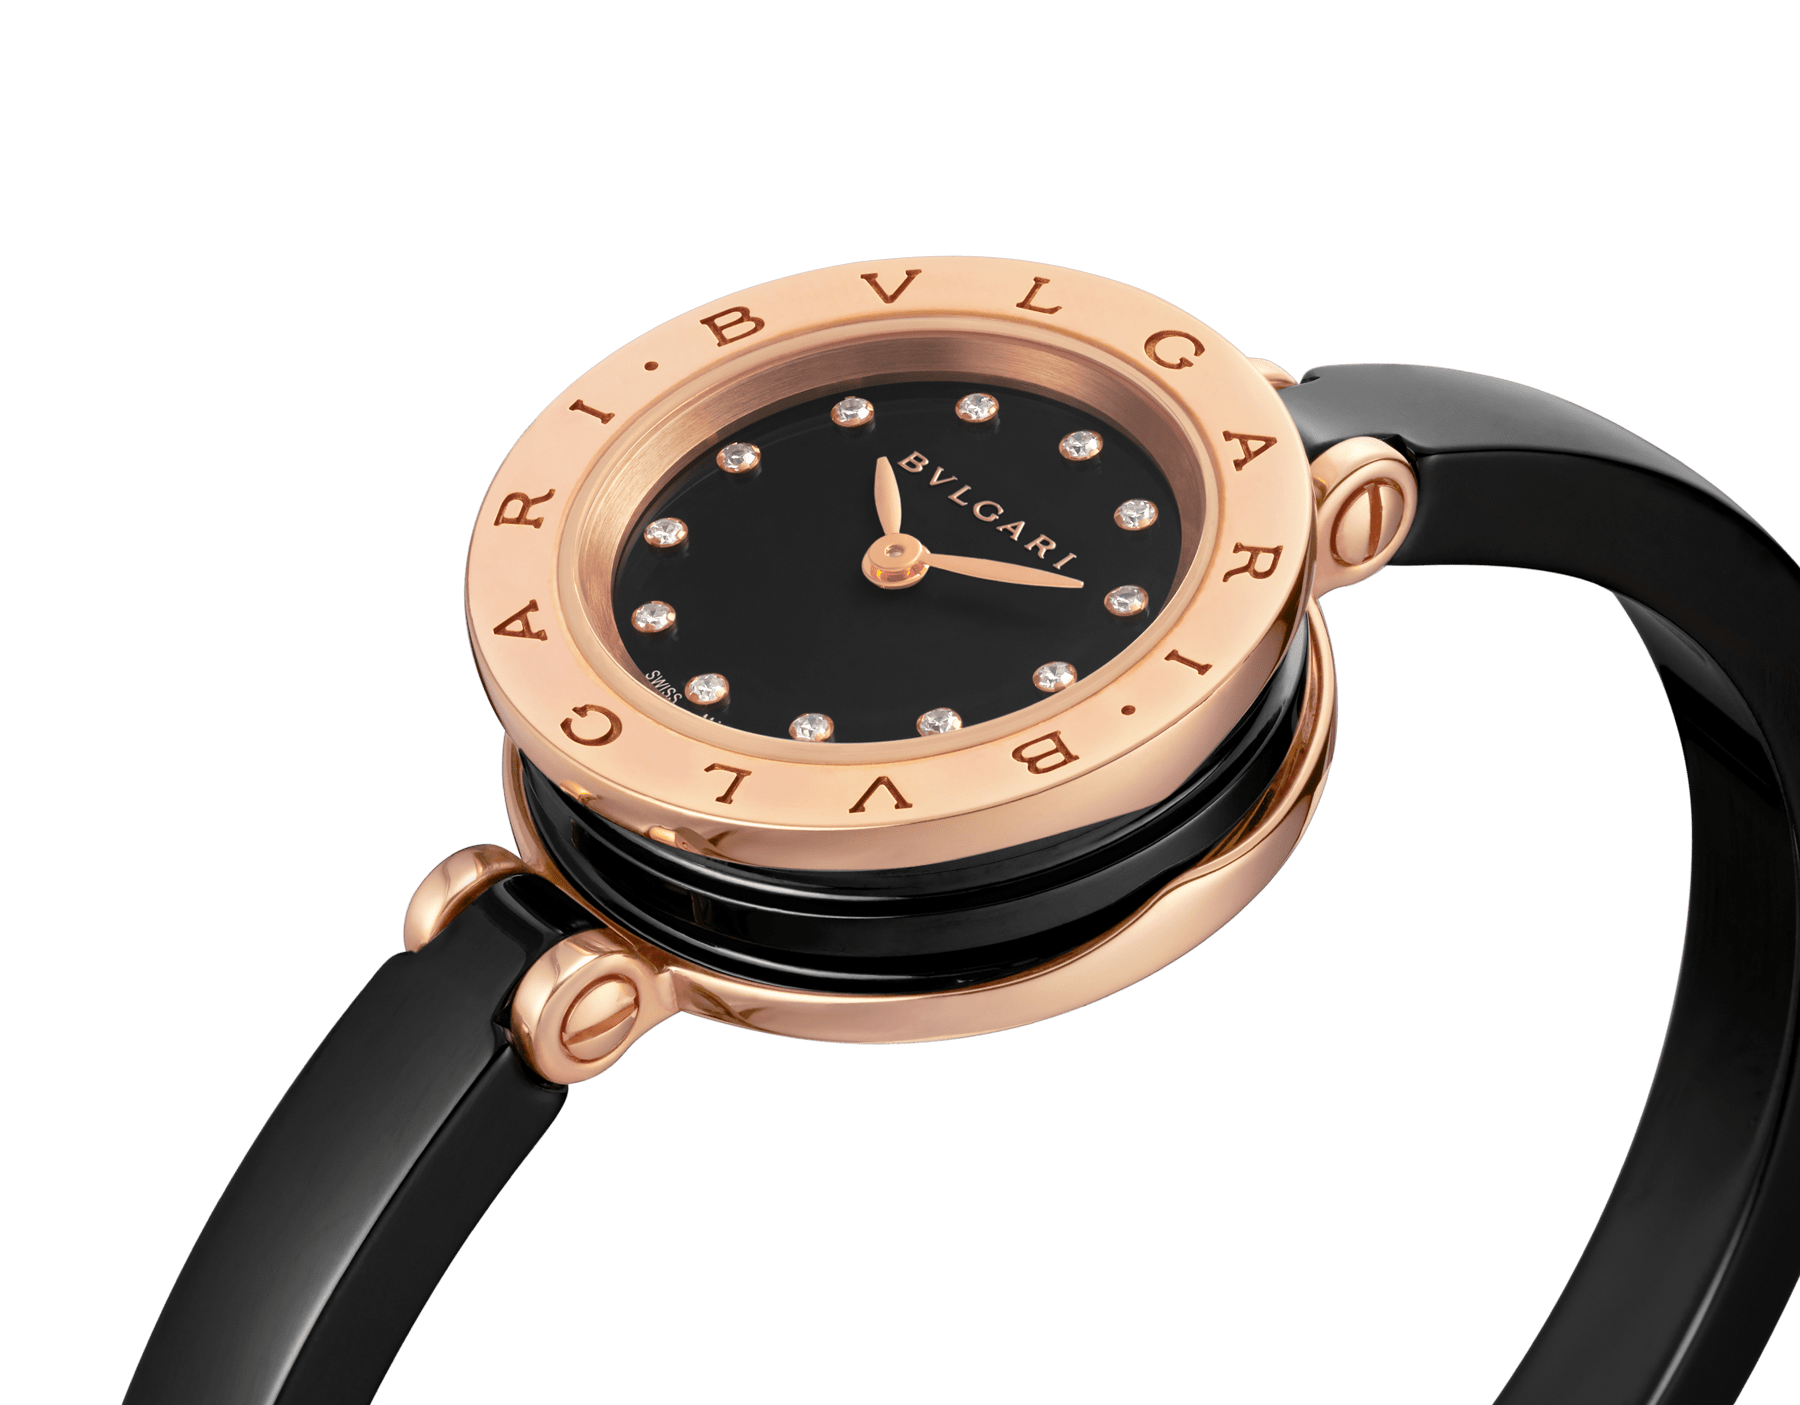 B.zero1 watch with 18 kt rose gold and black ceramic case, black lacquered dial set with diamond indexes, black ceramic bangle and 18 kt rose gold clasp. B01watch-black-black-dial2 image 5